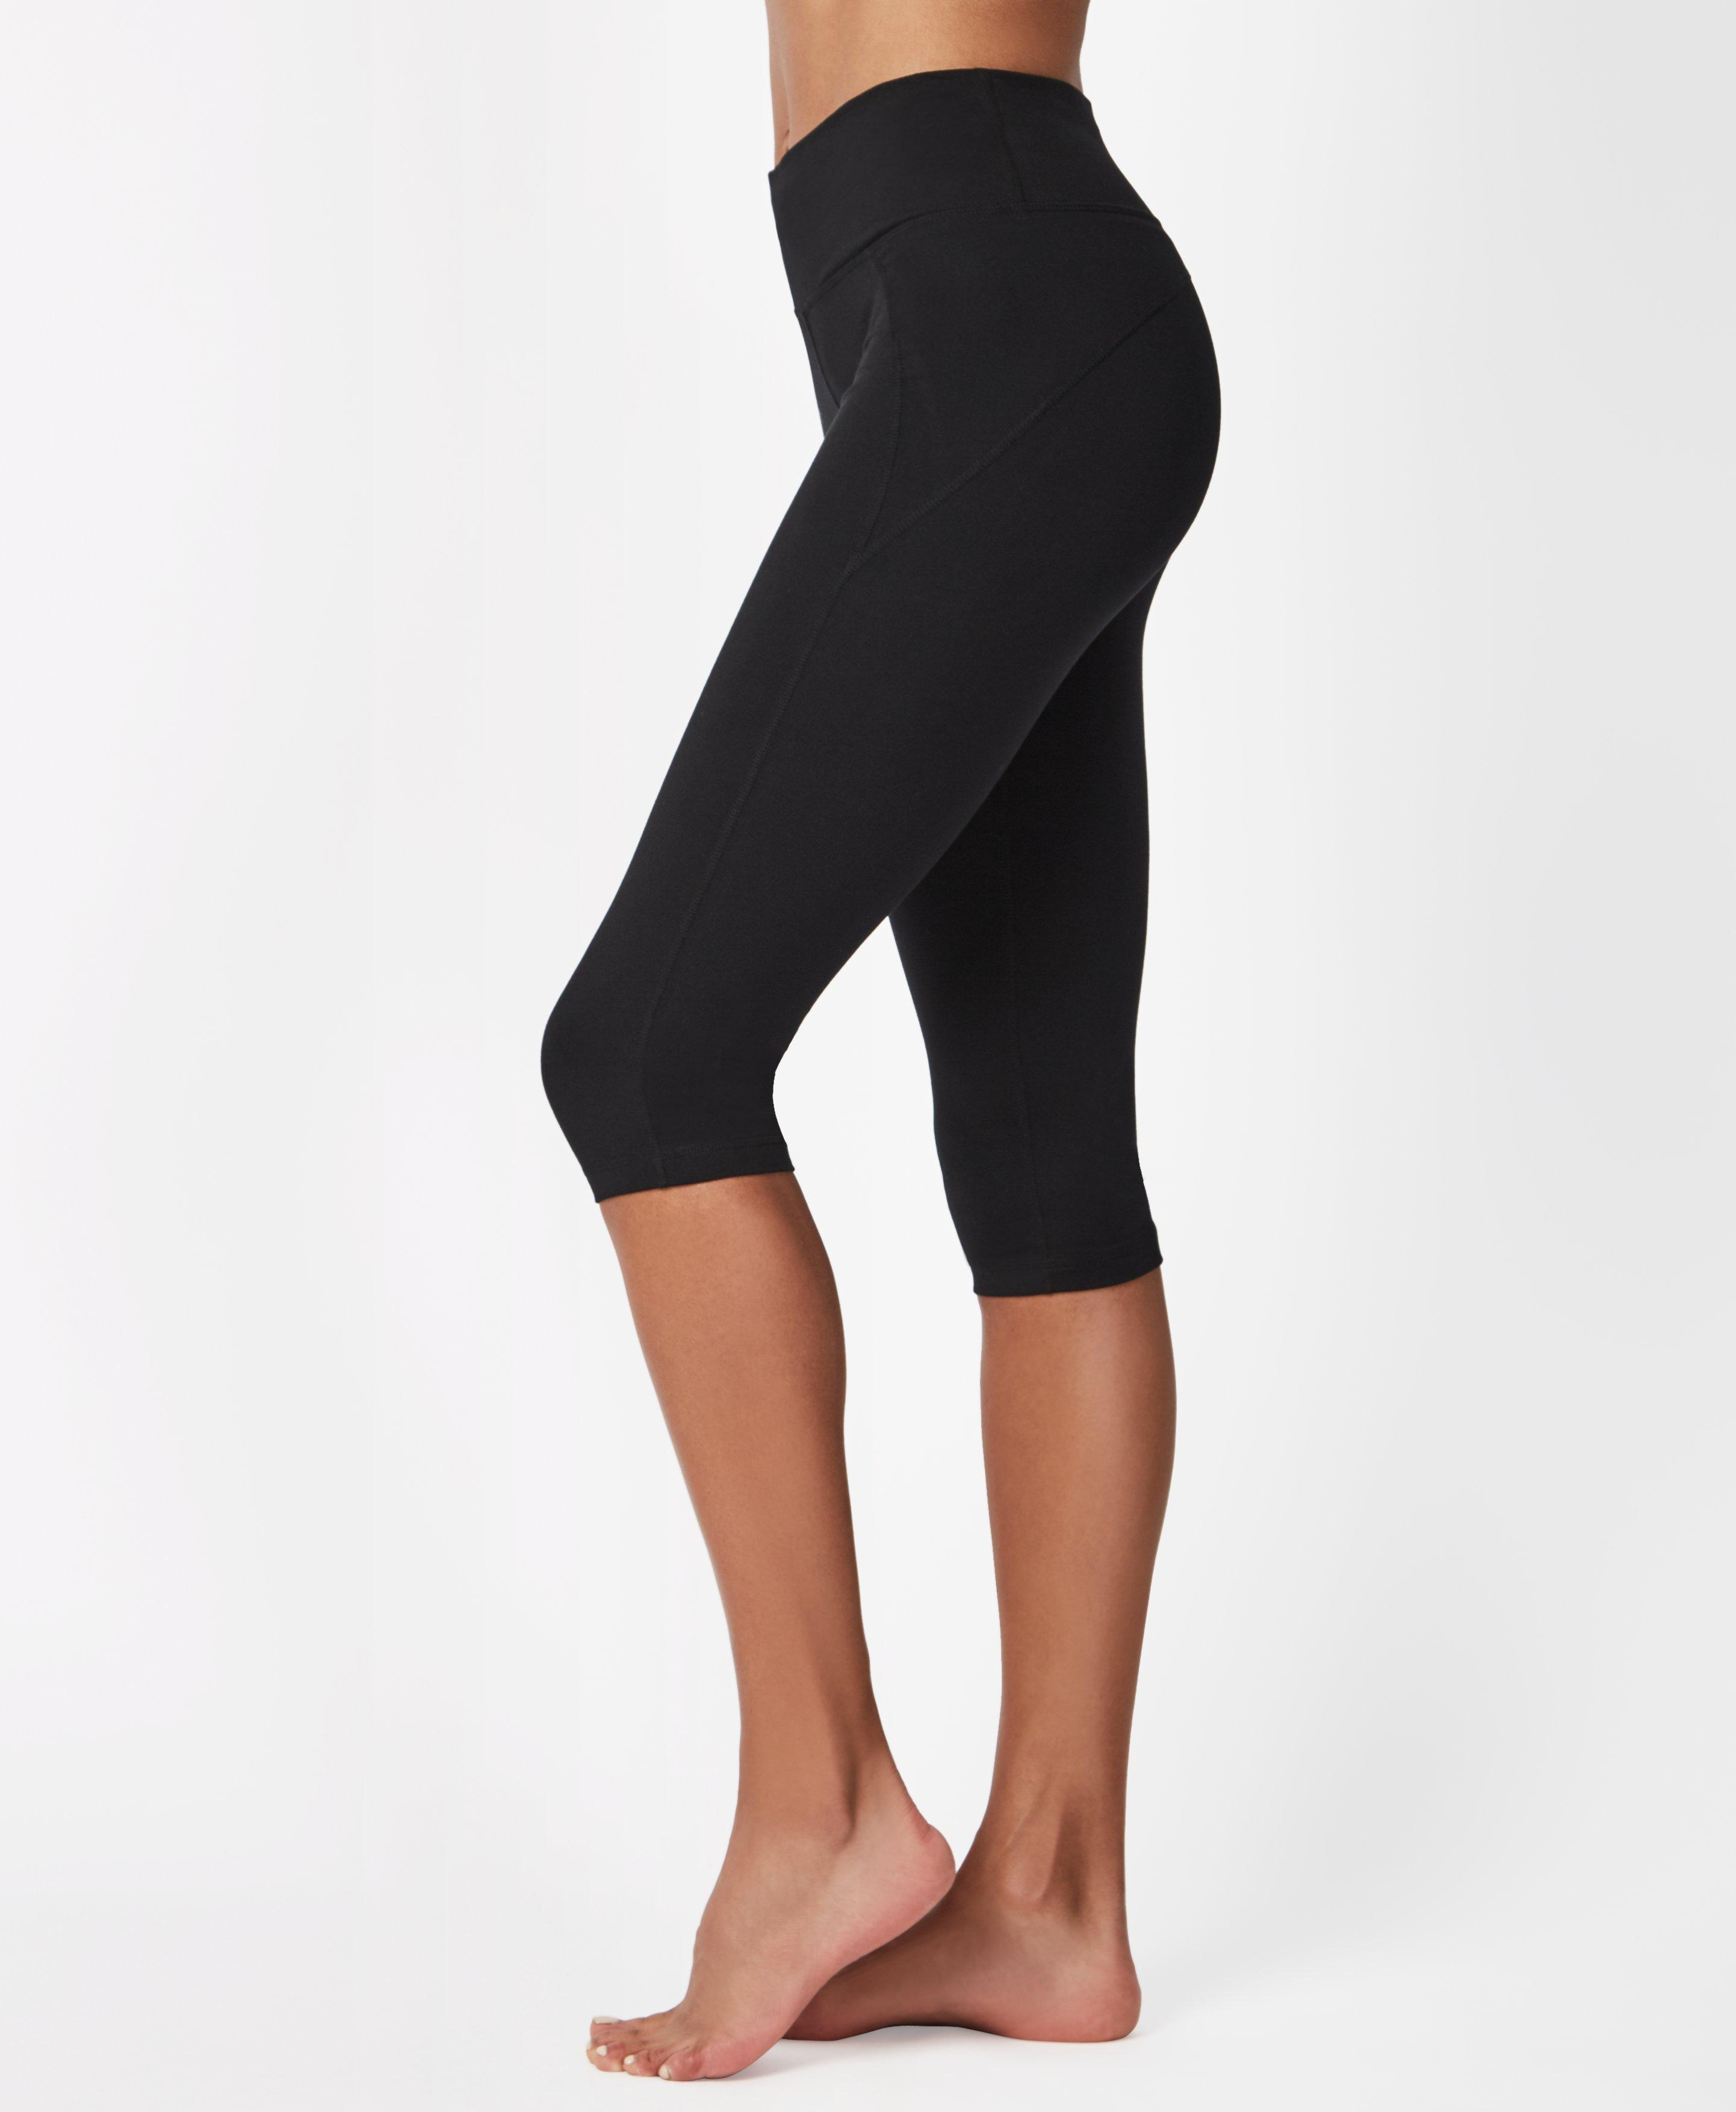 Can you ever go wrong with a super soft black legging? Lightweight, super soft and sweat-wicking, wear for every workout from Pilates to HIIT. The adjustable drawcord at the waist ensures the perfect fit.